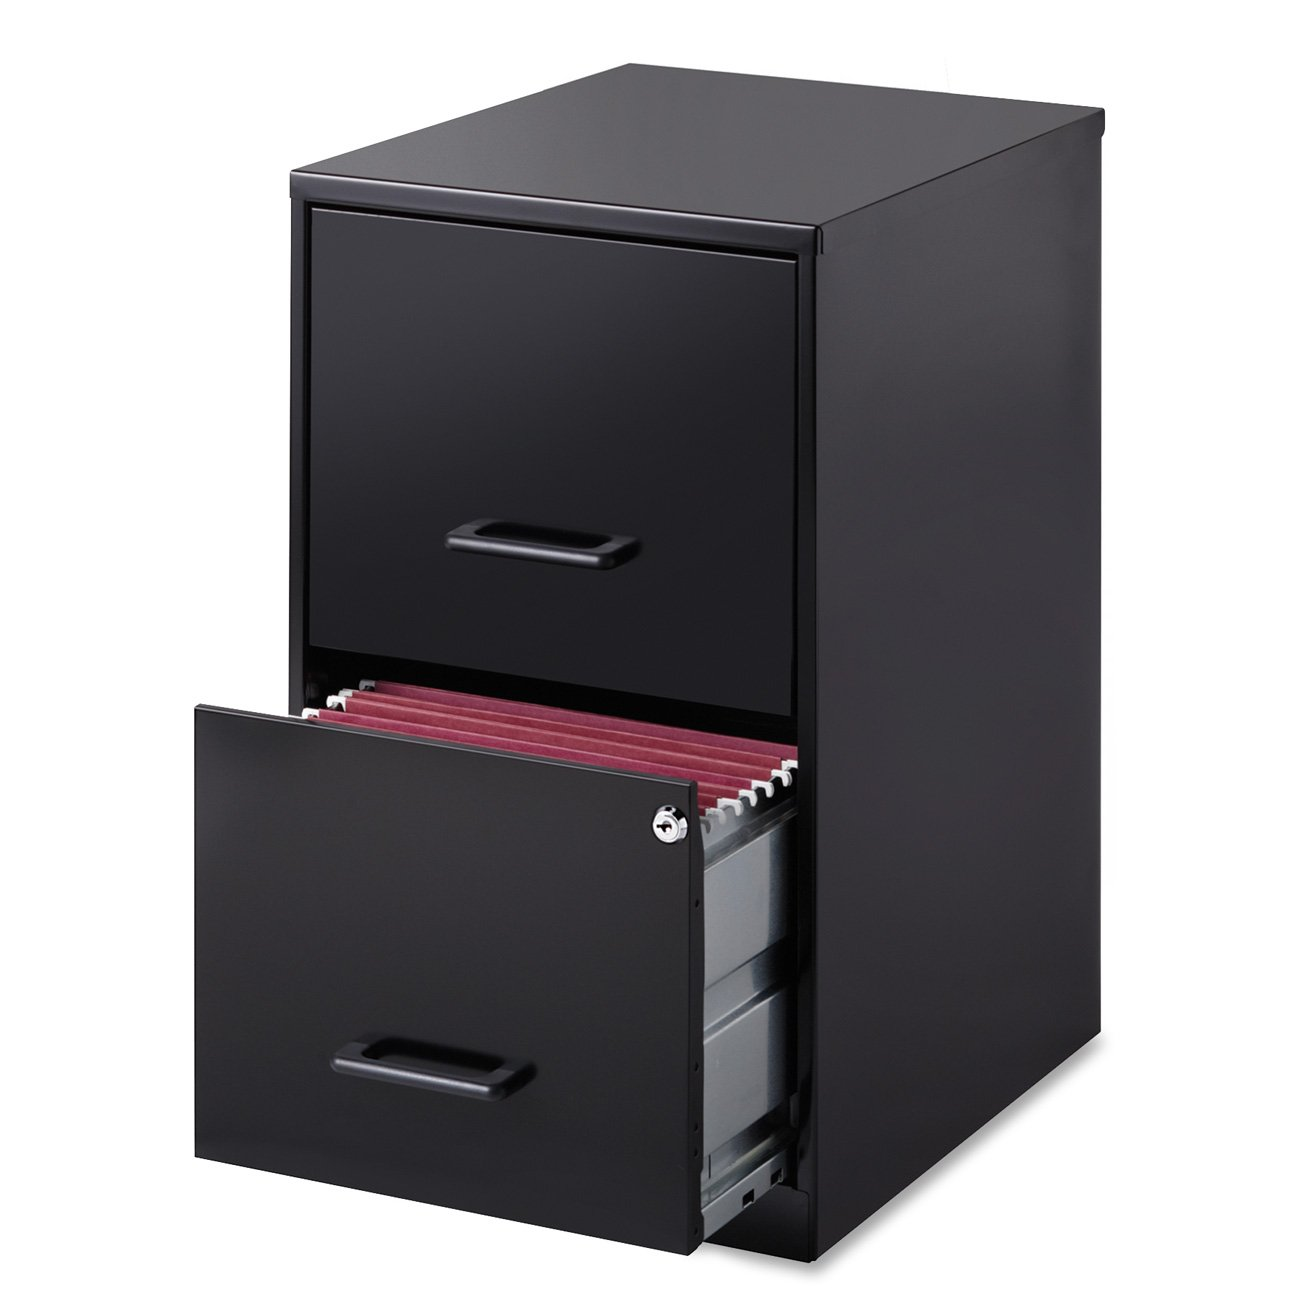 File Cabinet Amazoncom Lorell 14341 18 Deep 2 Drawer File Cabinet Black